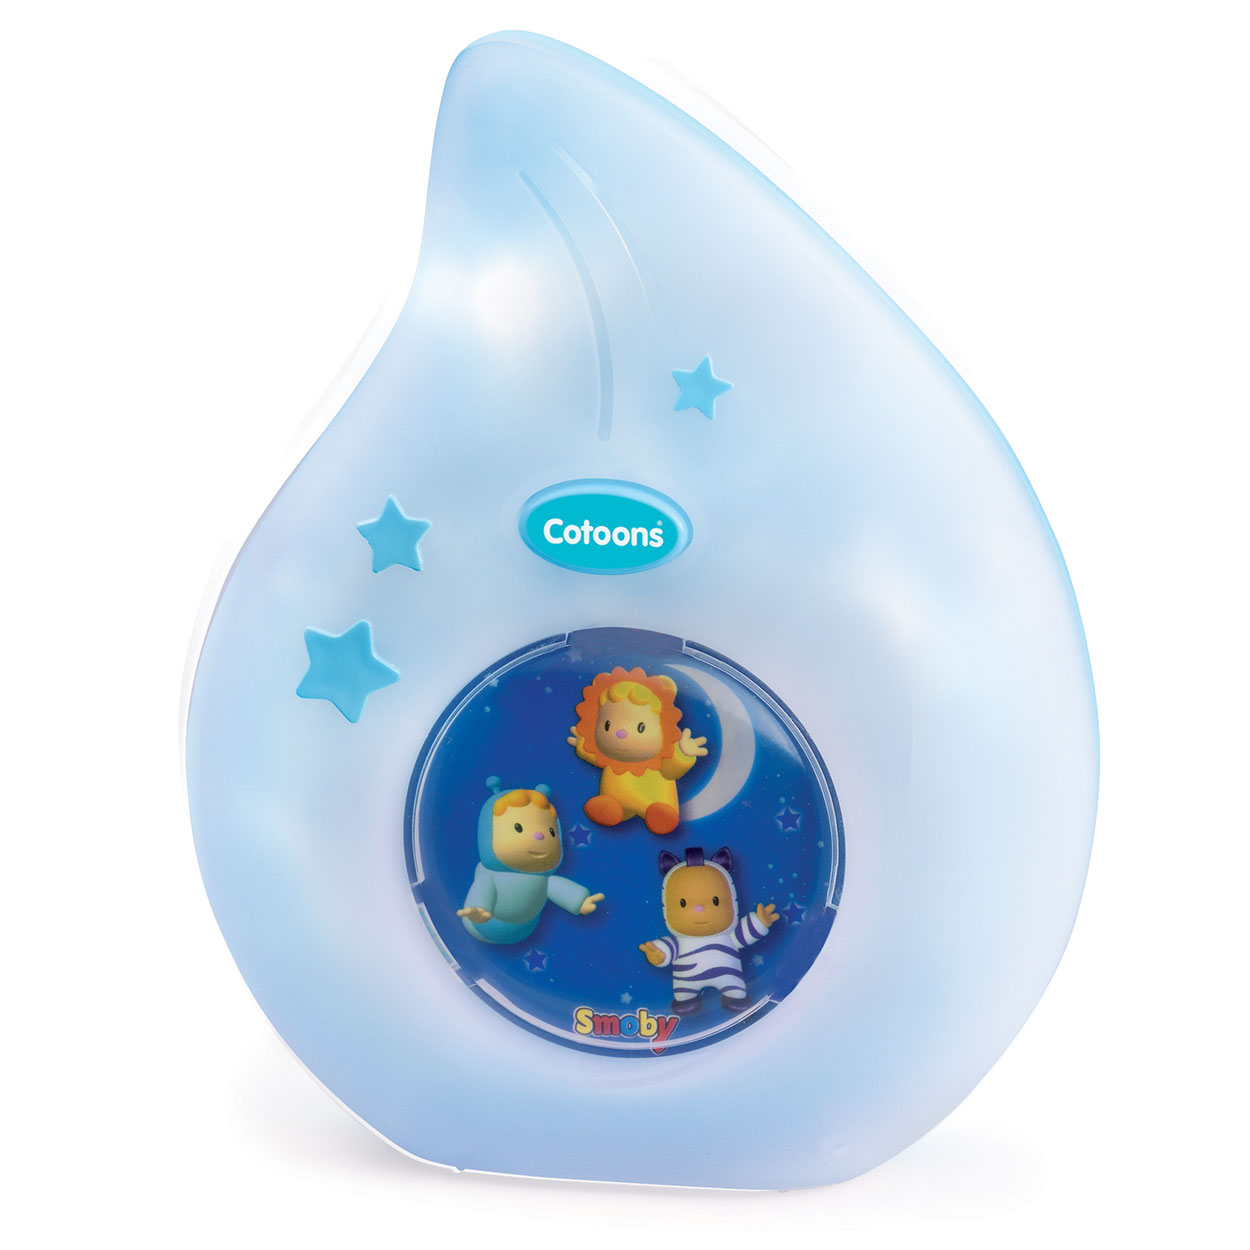 Smoby Cotoons Nachtlamp - Blauw